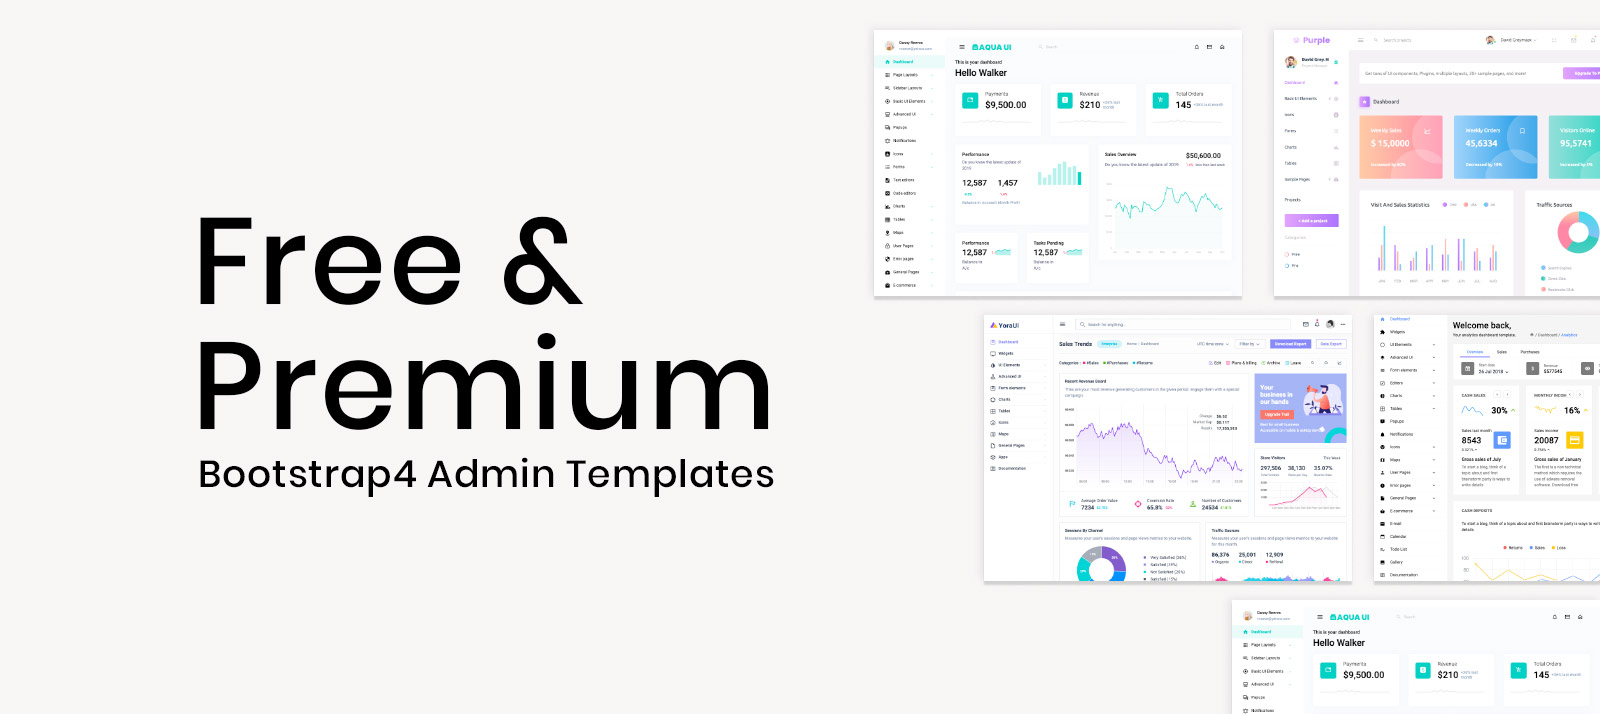 Best 30+ Free And Premium Bootstrap 4 Admin Templates of 2020